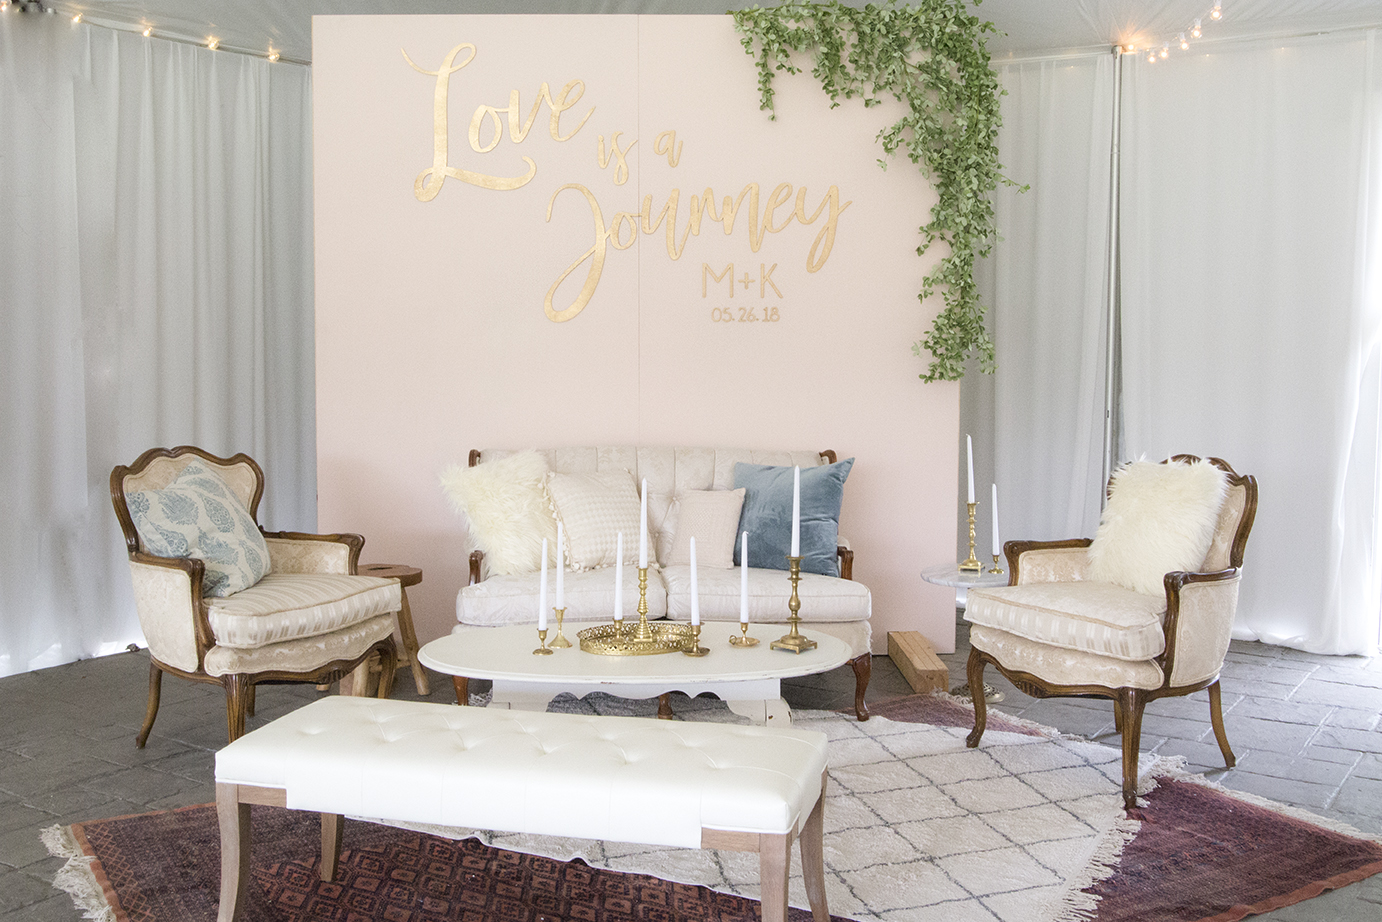 Happily ever Afetr Tannous - Wedding complete styling